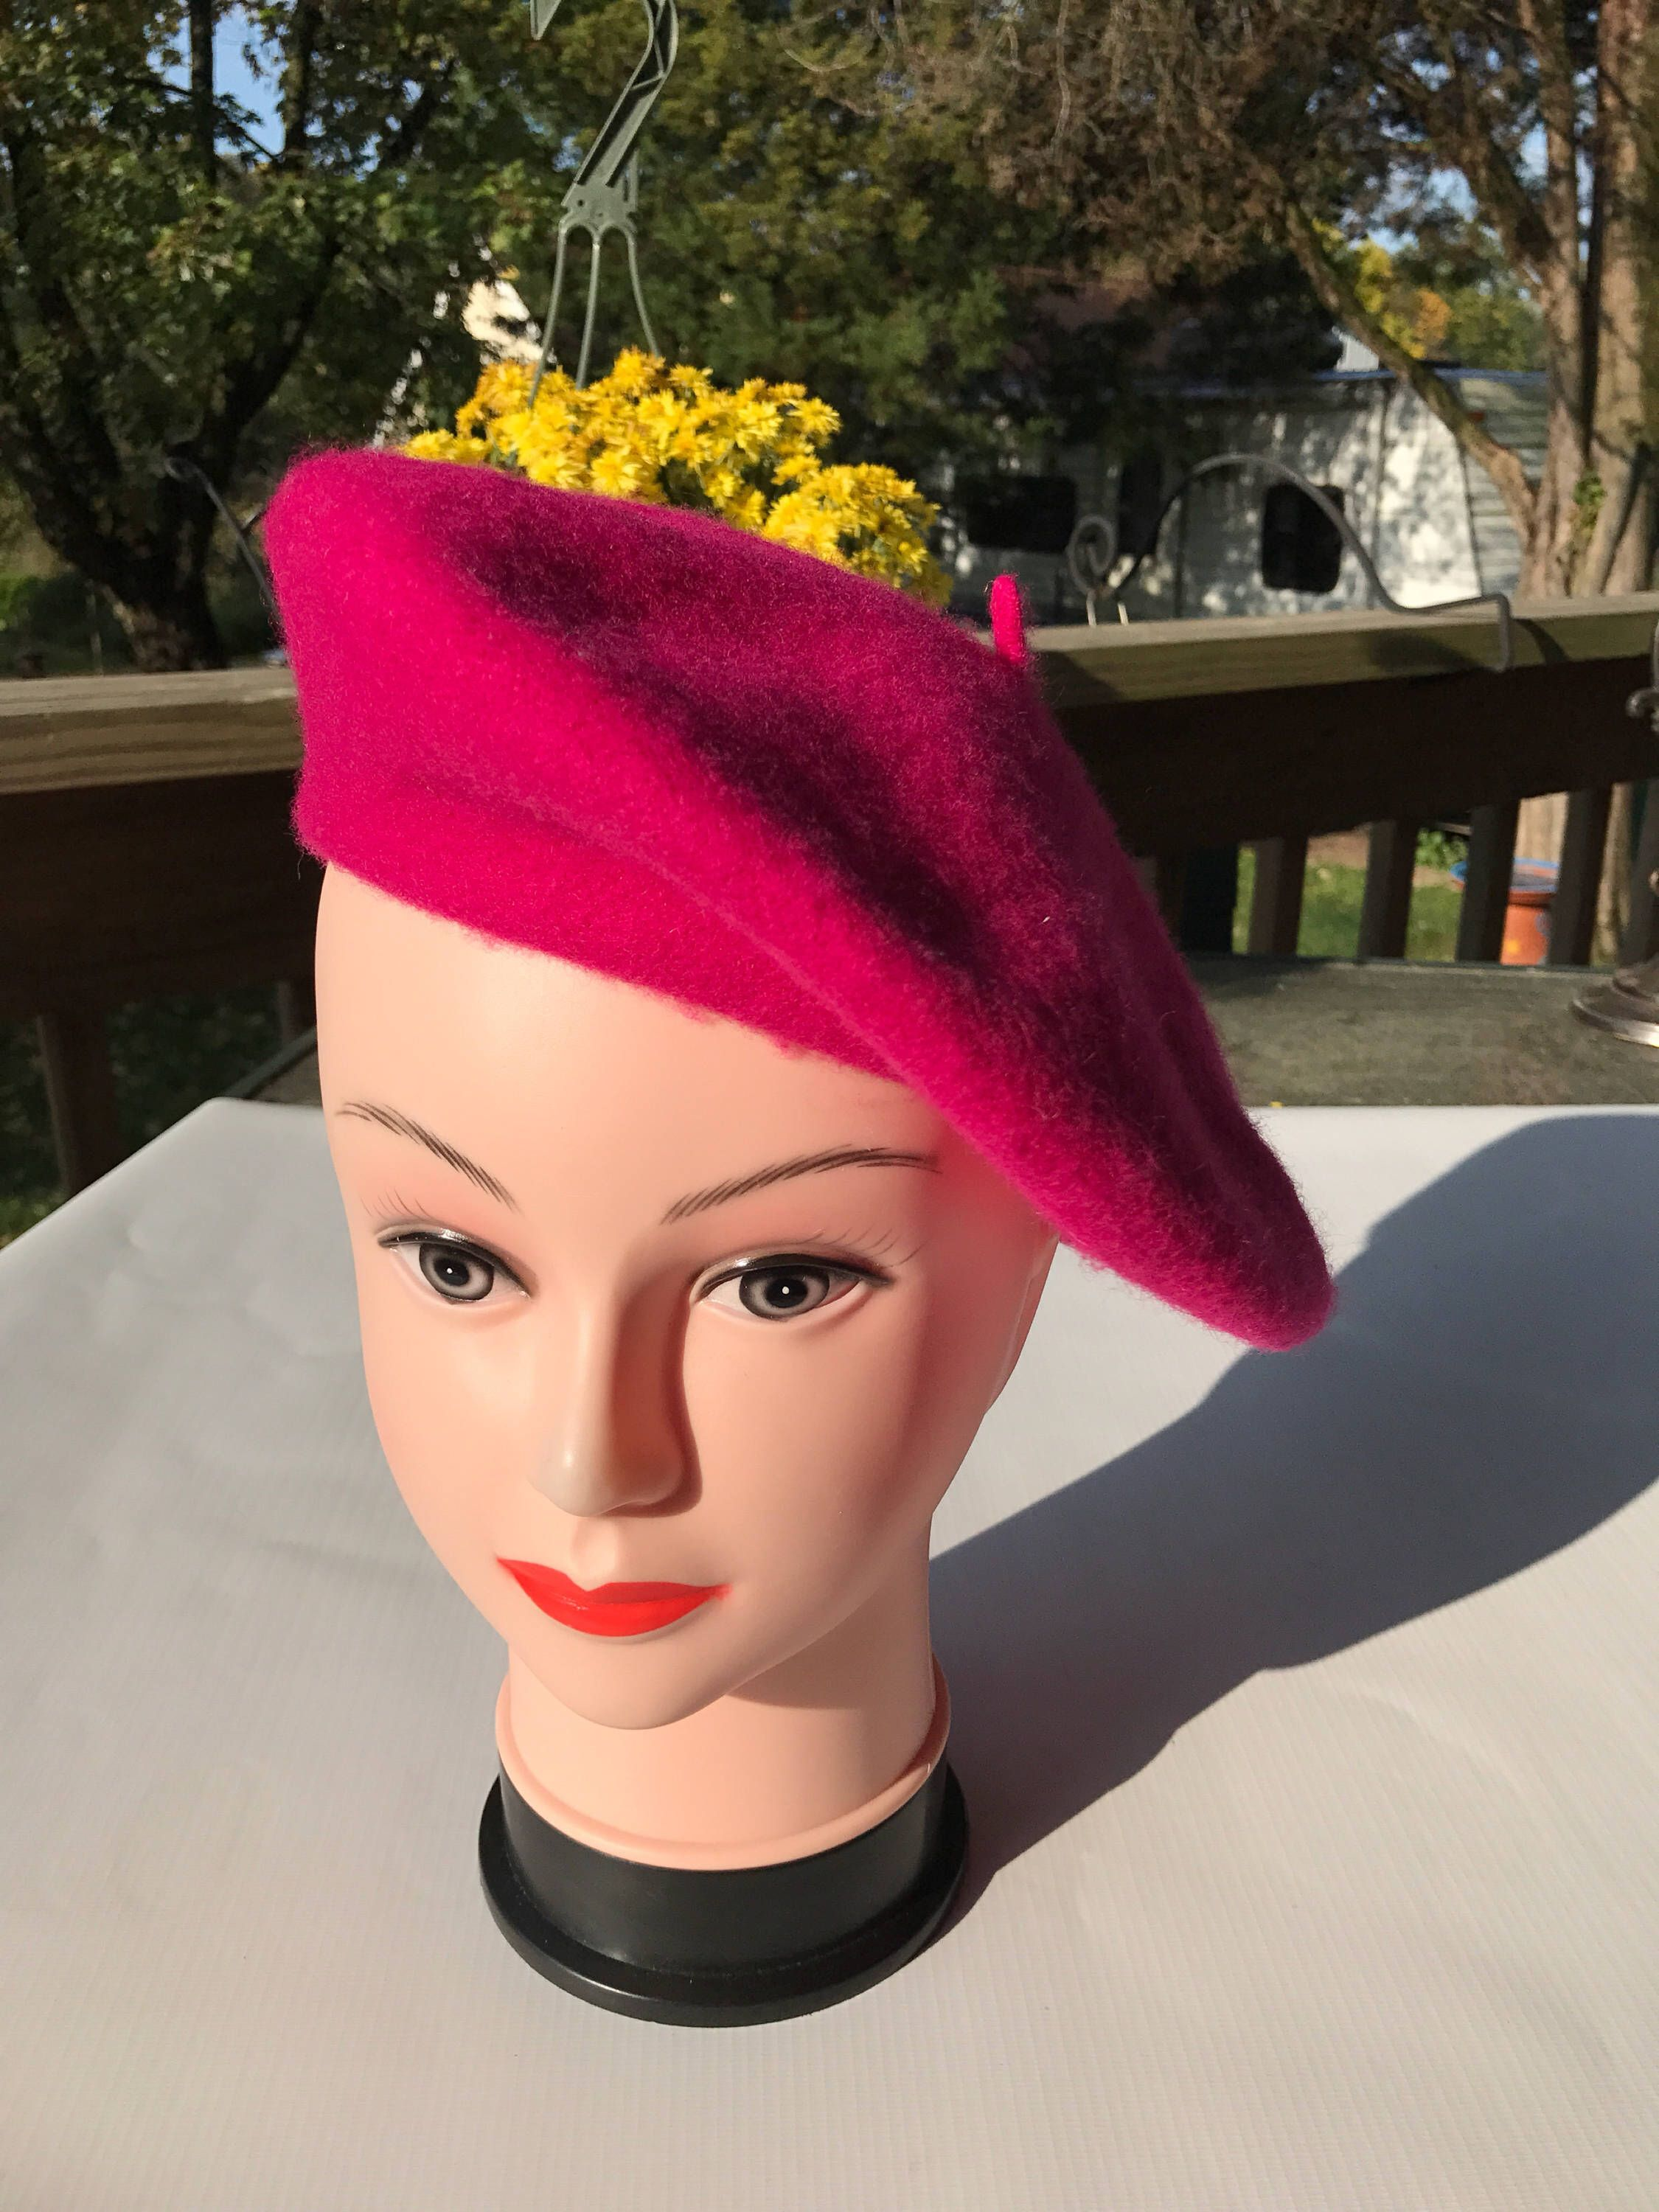 Vintage Raspberry Beret The Kind You Find In A Second Hand Store 95 Wool By Vintagerepurposement On Etsy Https Www Etsy C Vintage Second Hand Stores Beret